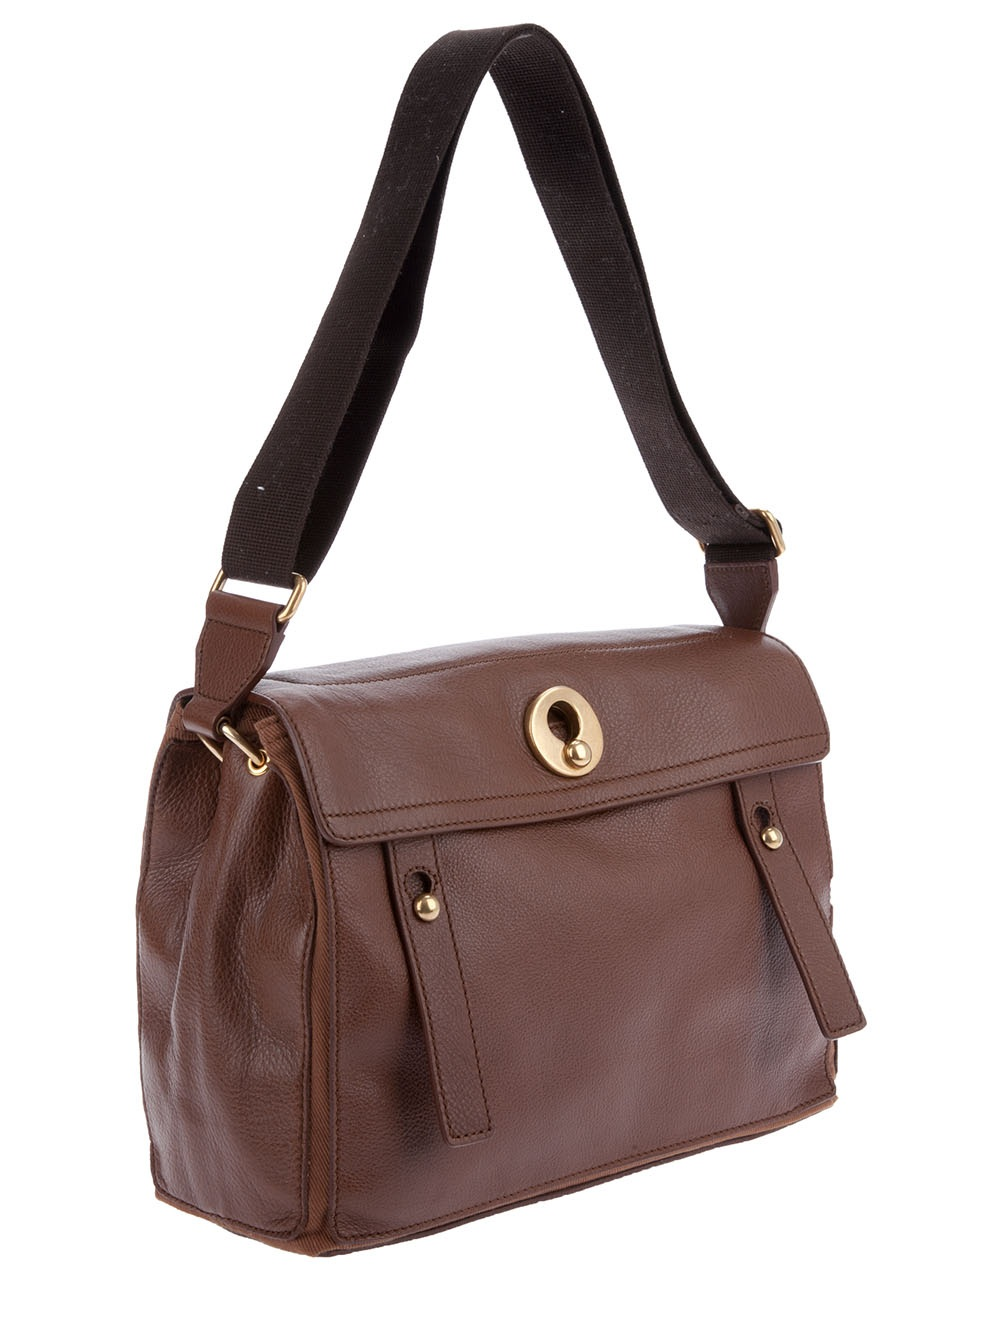 Saint laurent Travel Muse Two Leather Shoulder Bag in Brown | Lyst